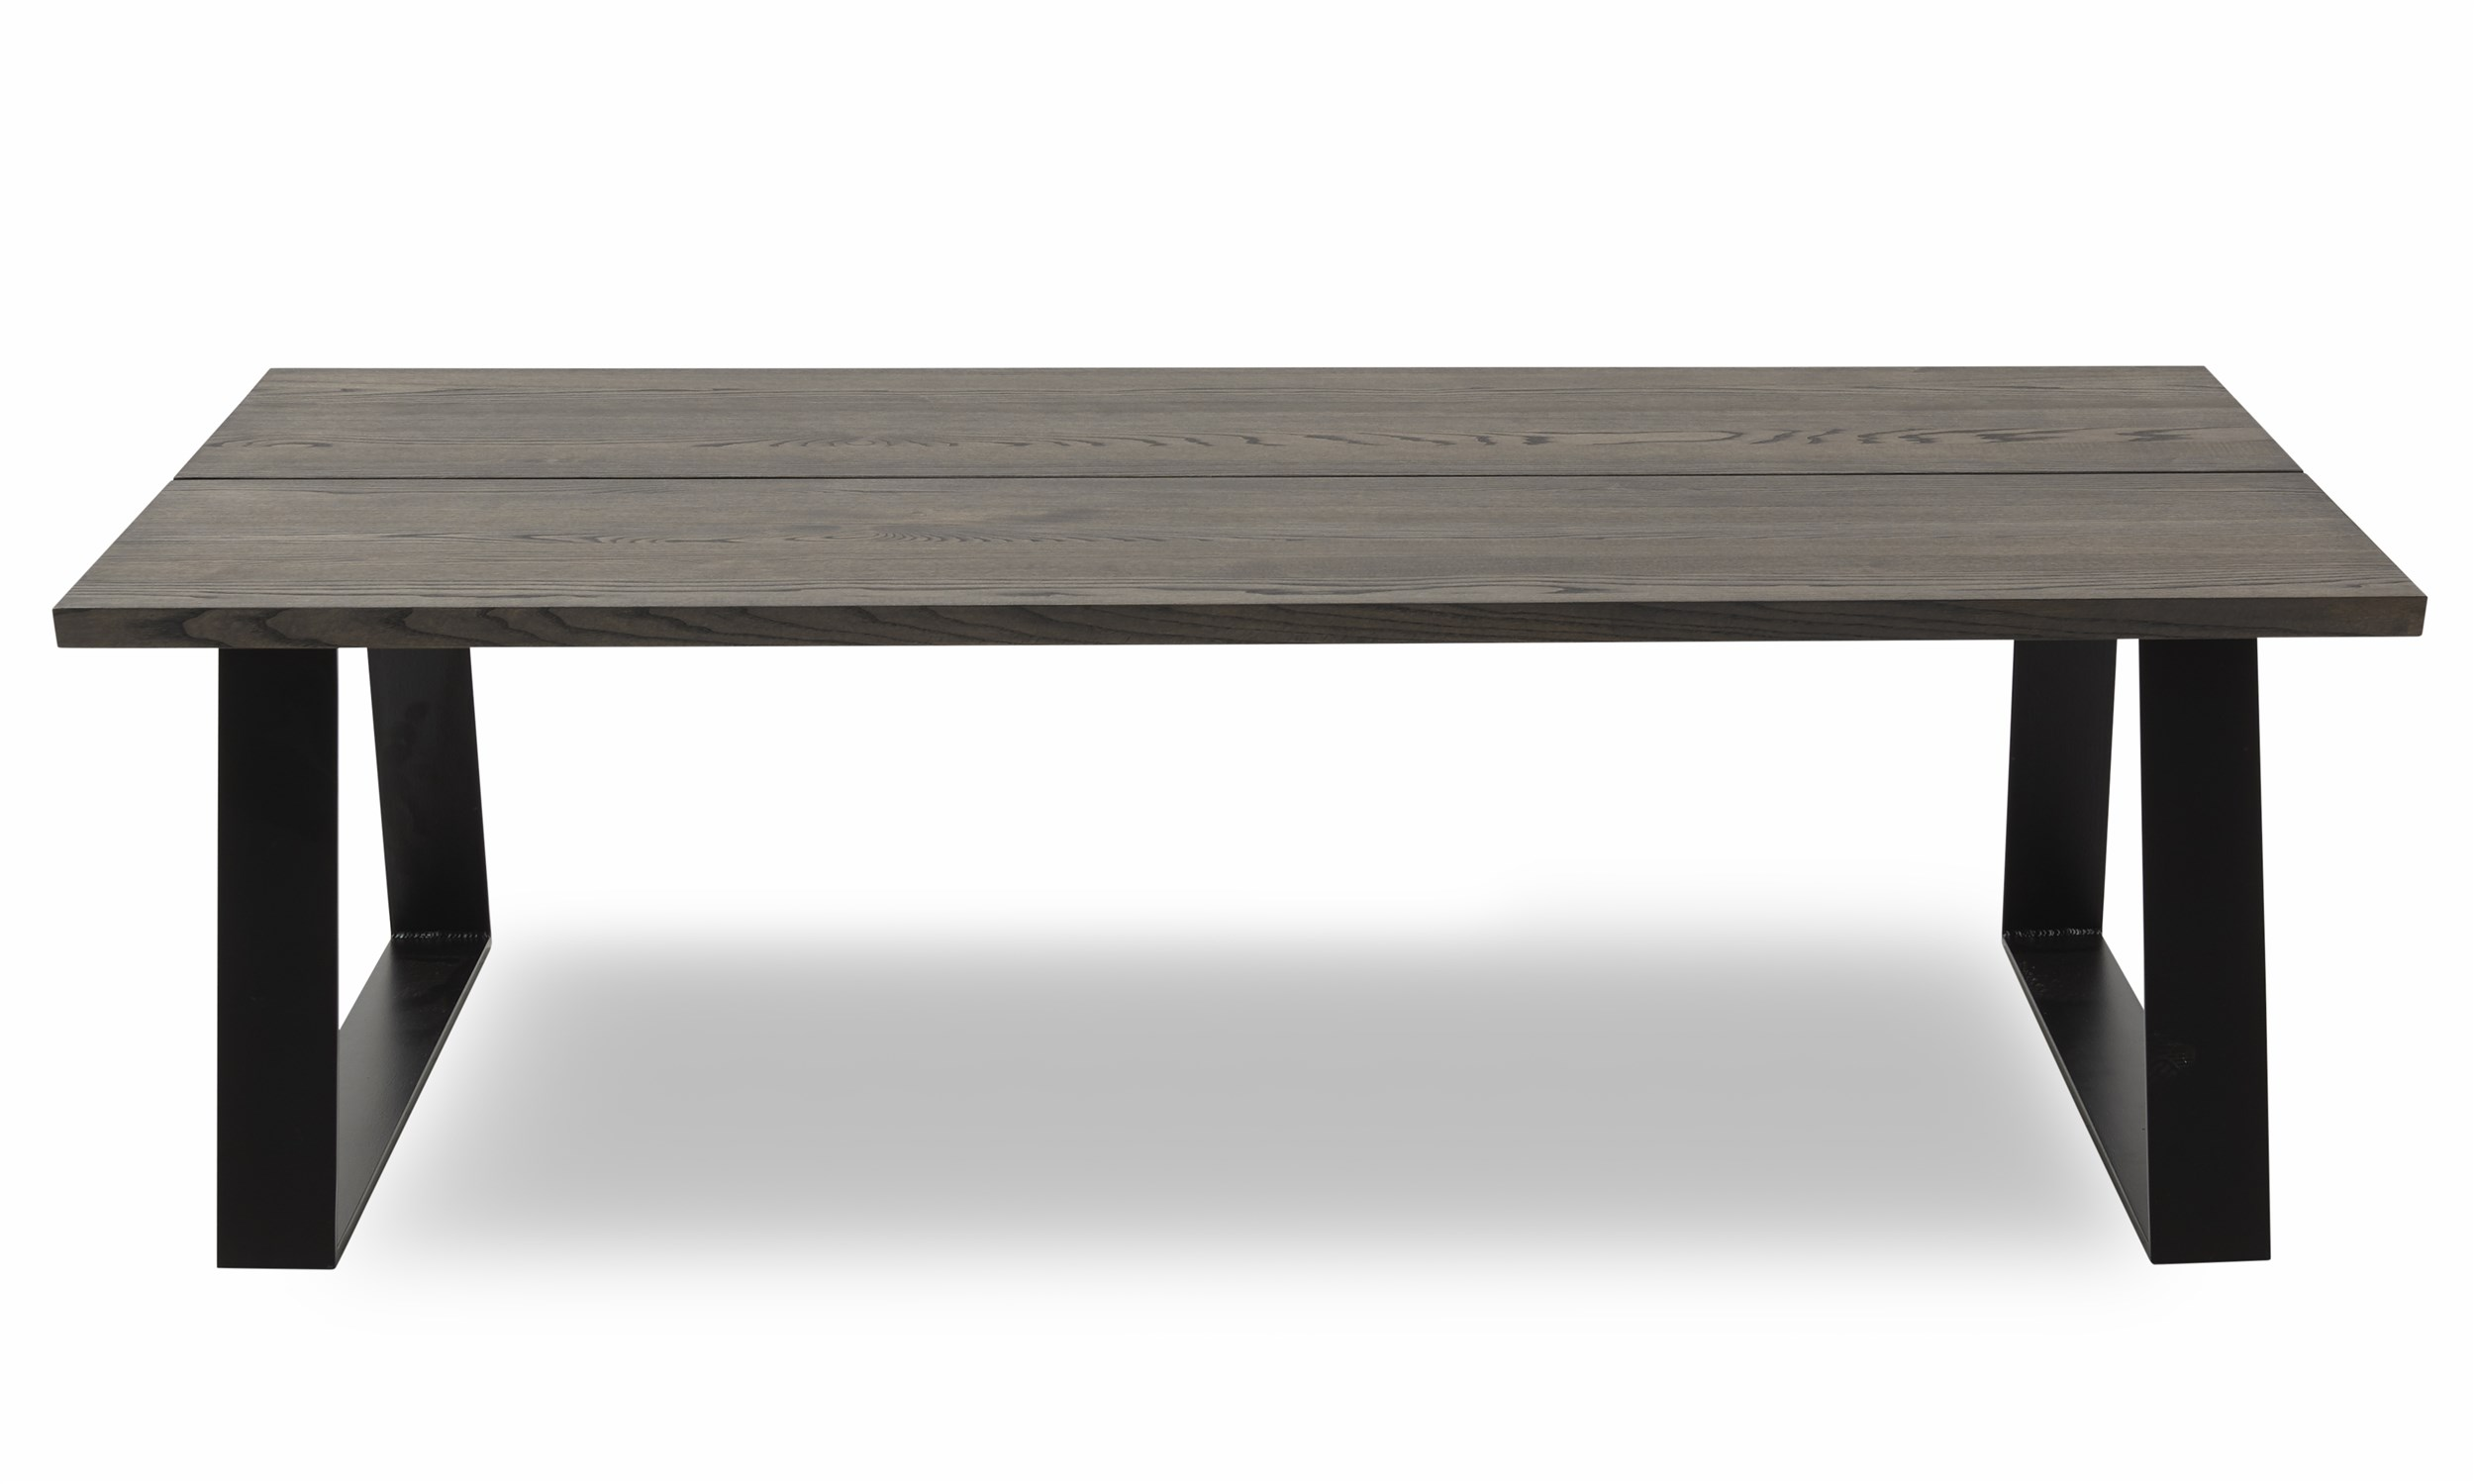 Timber Sofabord 150 x 45 x 90 cm - Sofabord 150 x 45 x 90 cm